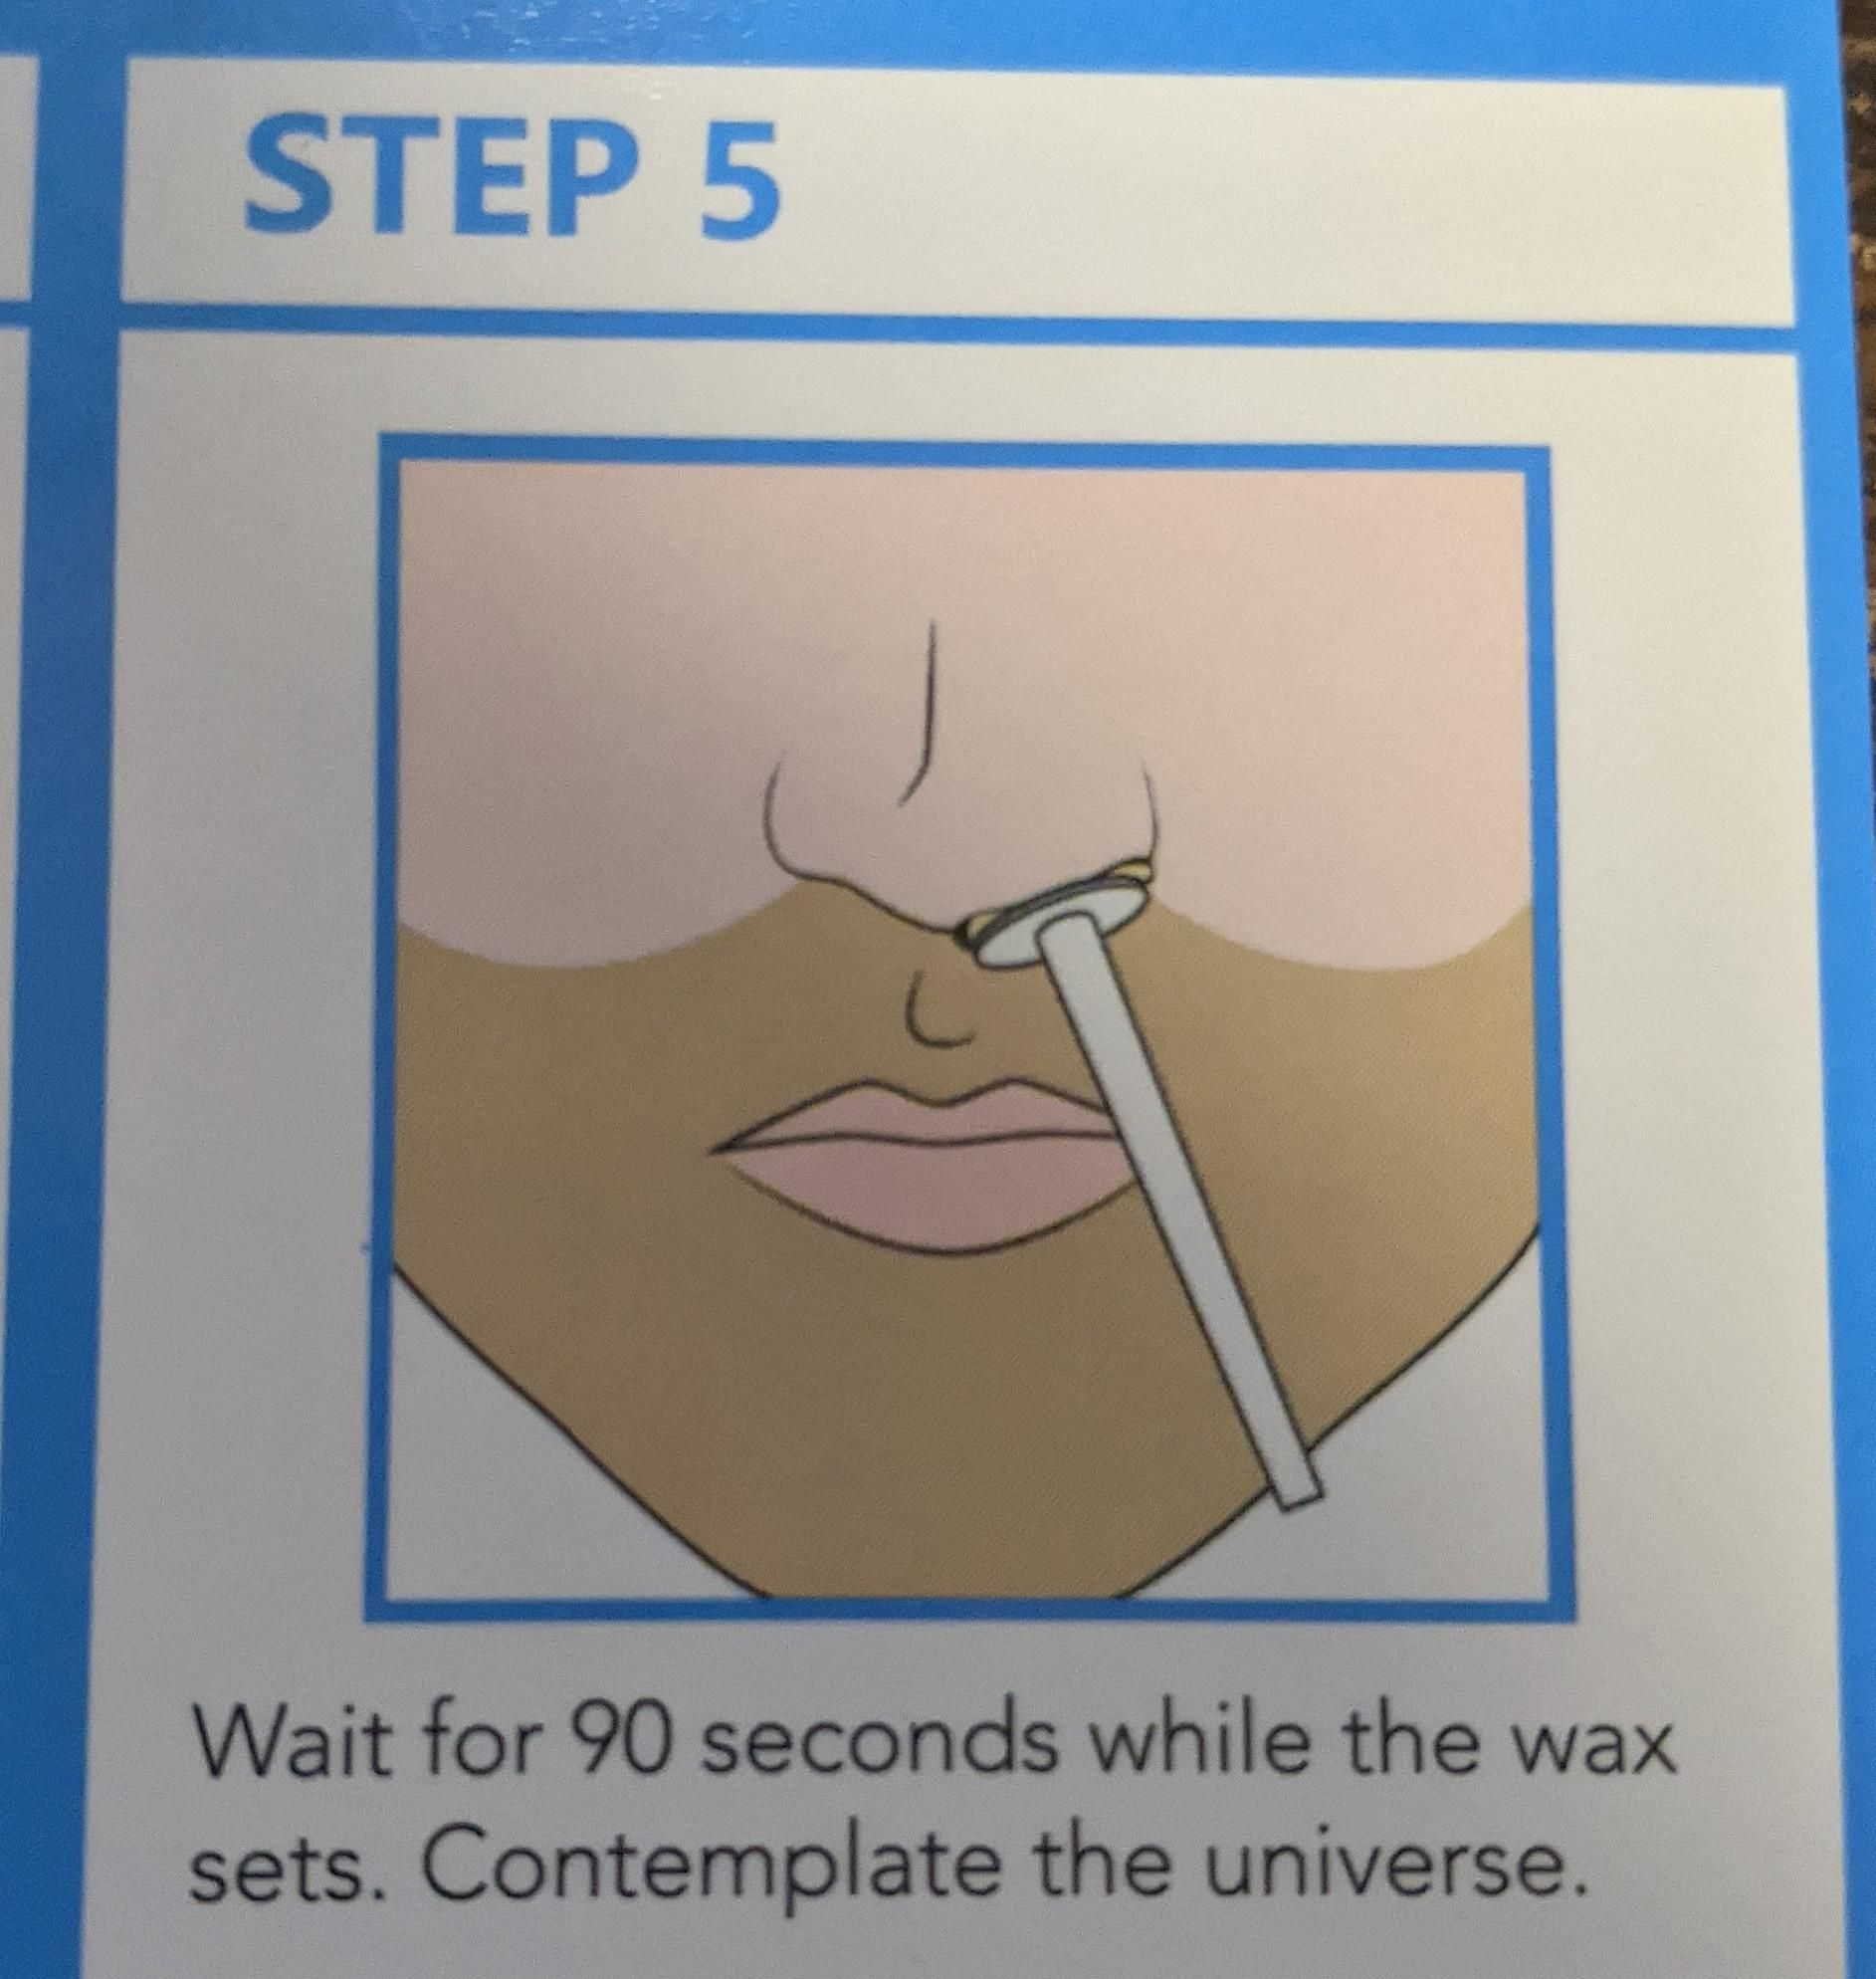 Step 5 of nose waxing kit.